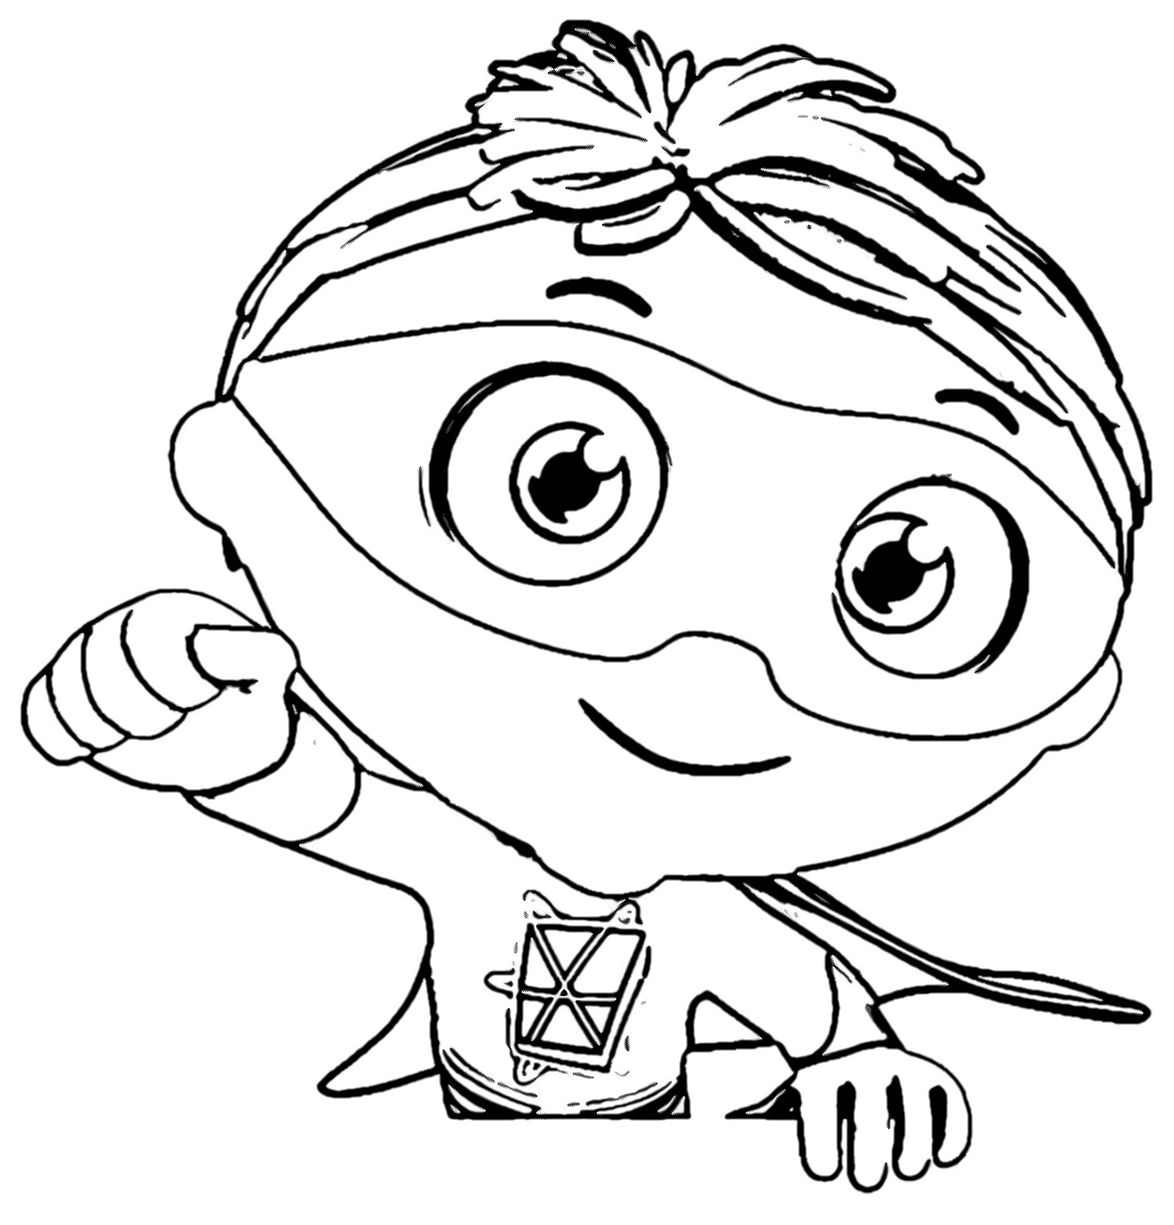 Super Why Coloring Page | Super why, Super coloring pages ...